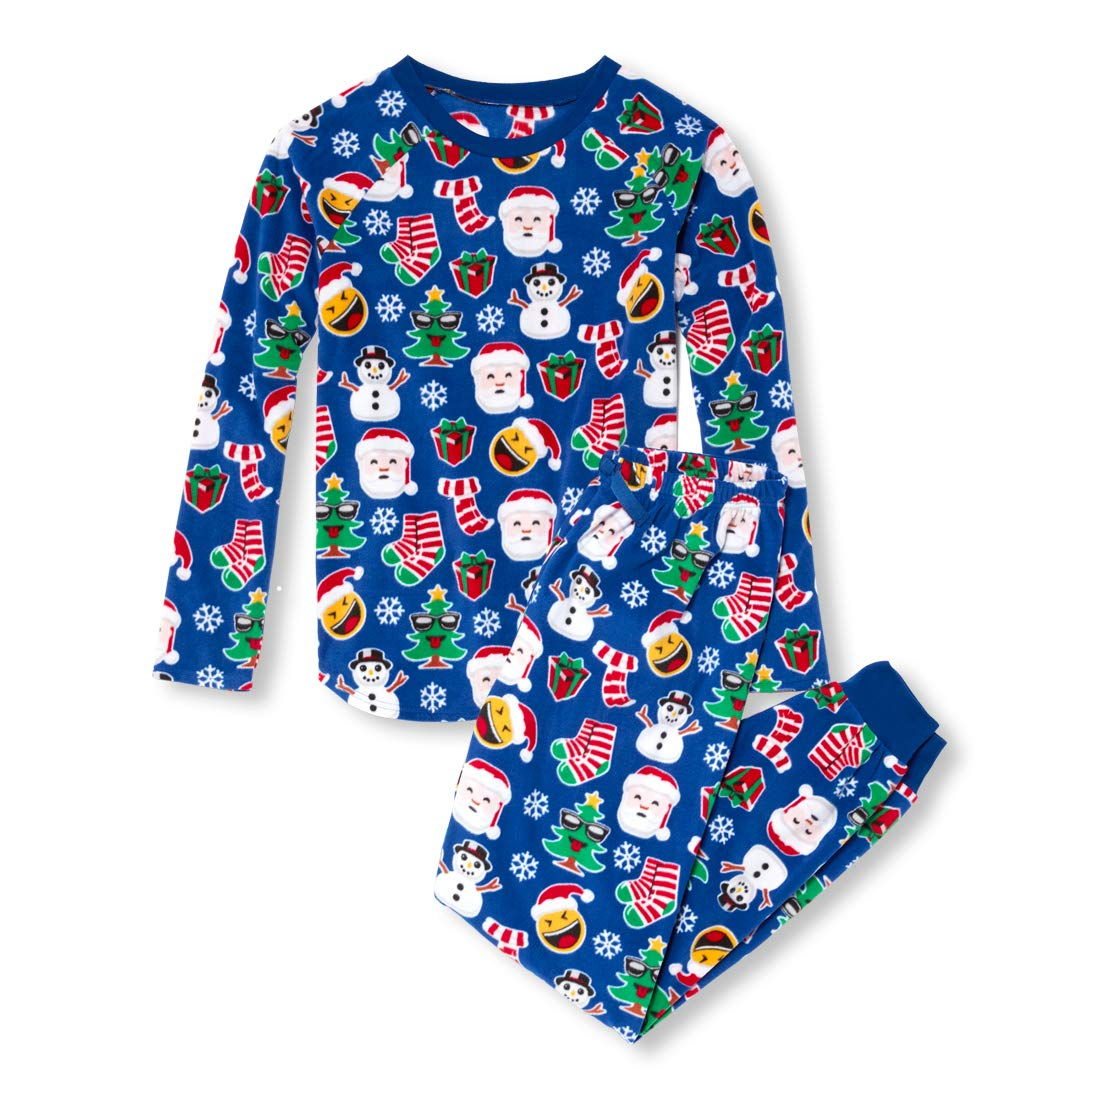 efd33af13a47a The Children's Place Unisex Adult Christmas Pajama Set at Amazon ...